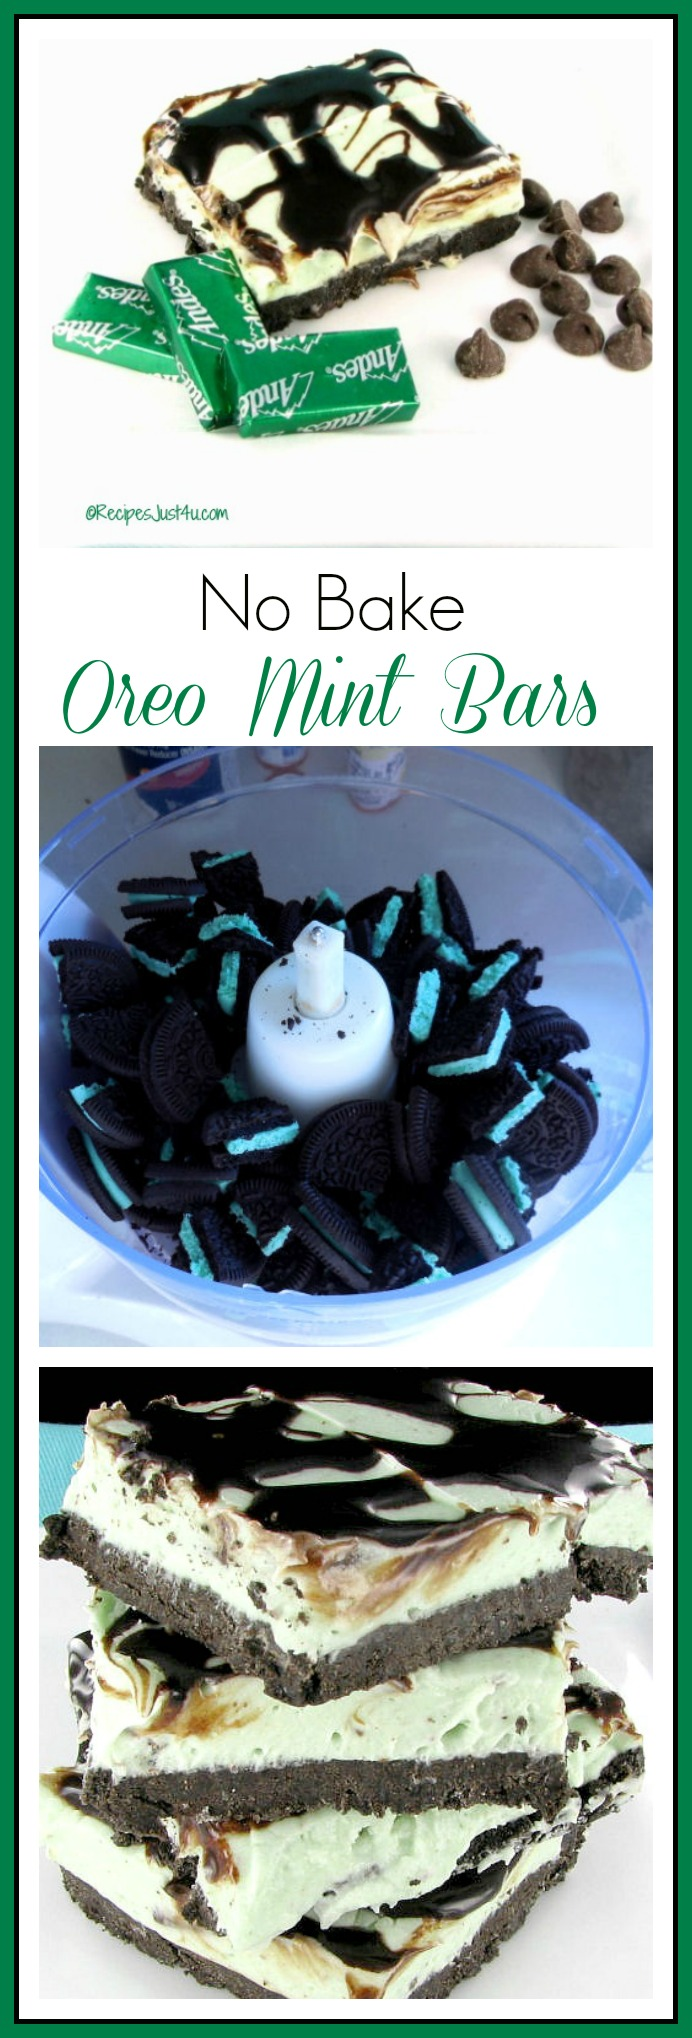 These no bake Oreo mint cheese cake bars have a delightful fresh mint taste - recipesjust4u.com